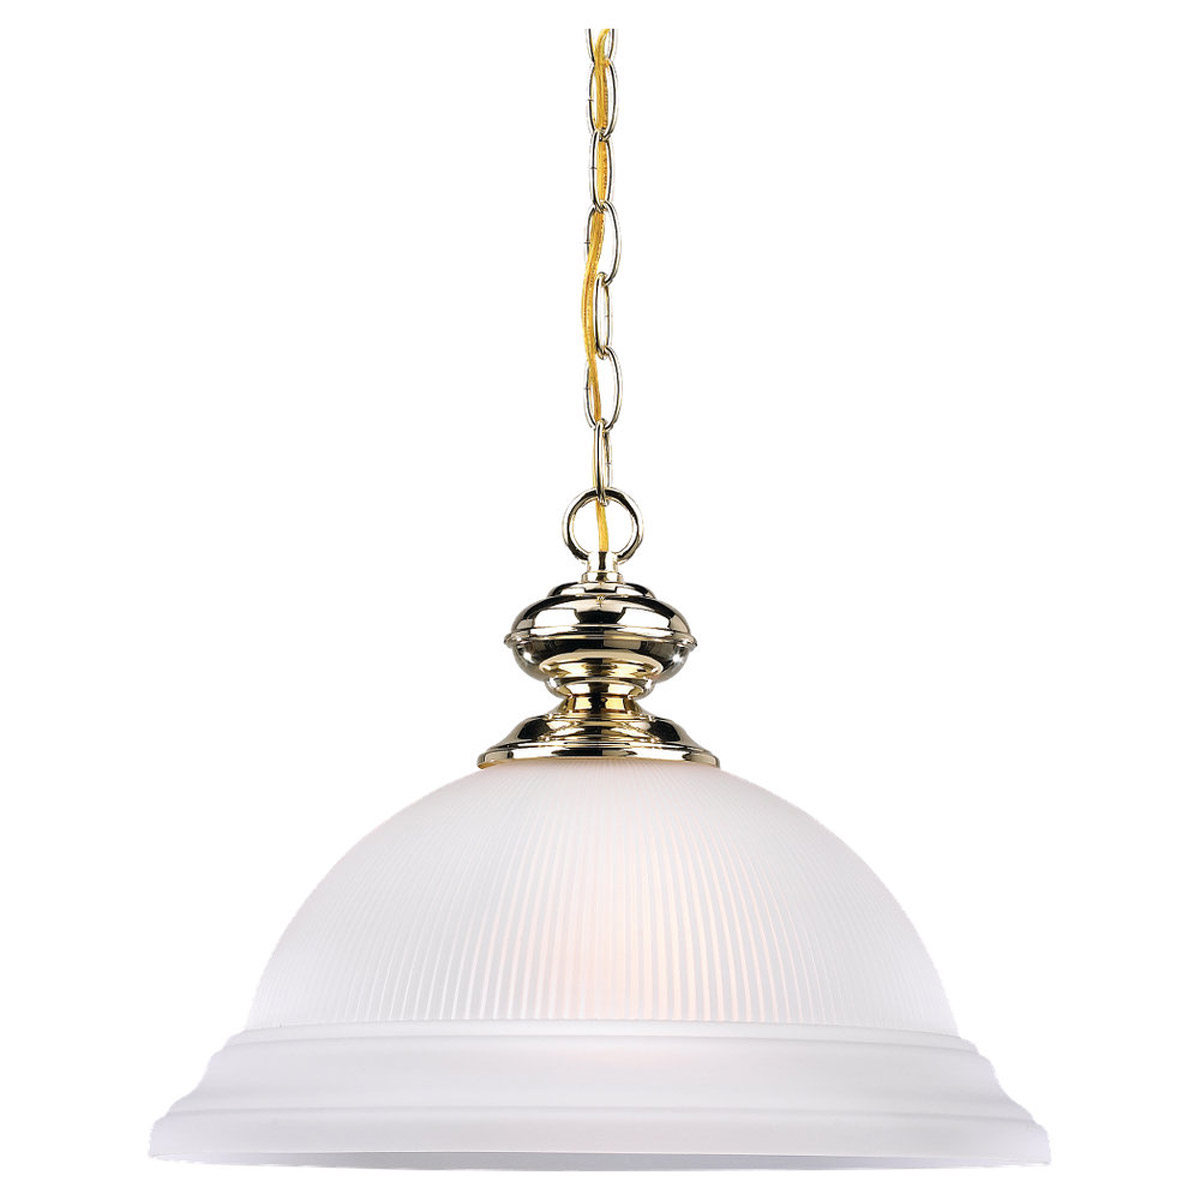 Sea Gull Lighting Mullica Hill 1 Light Pendant in Polished Brass 6640-02